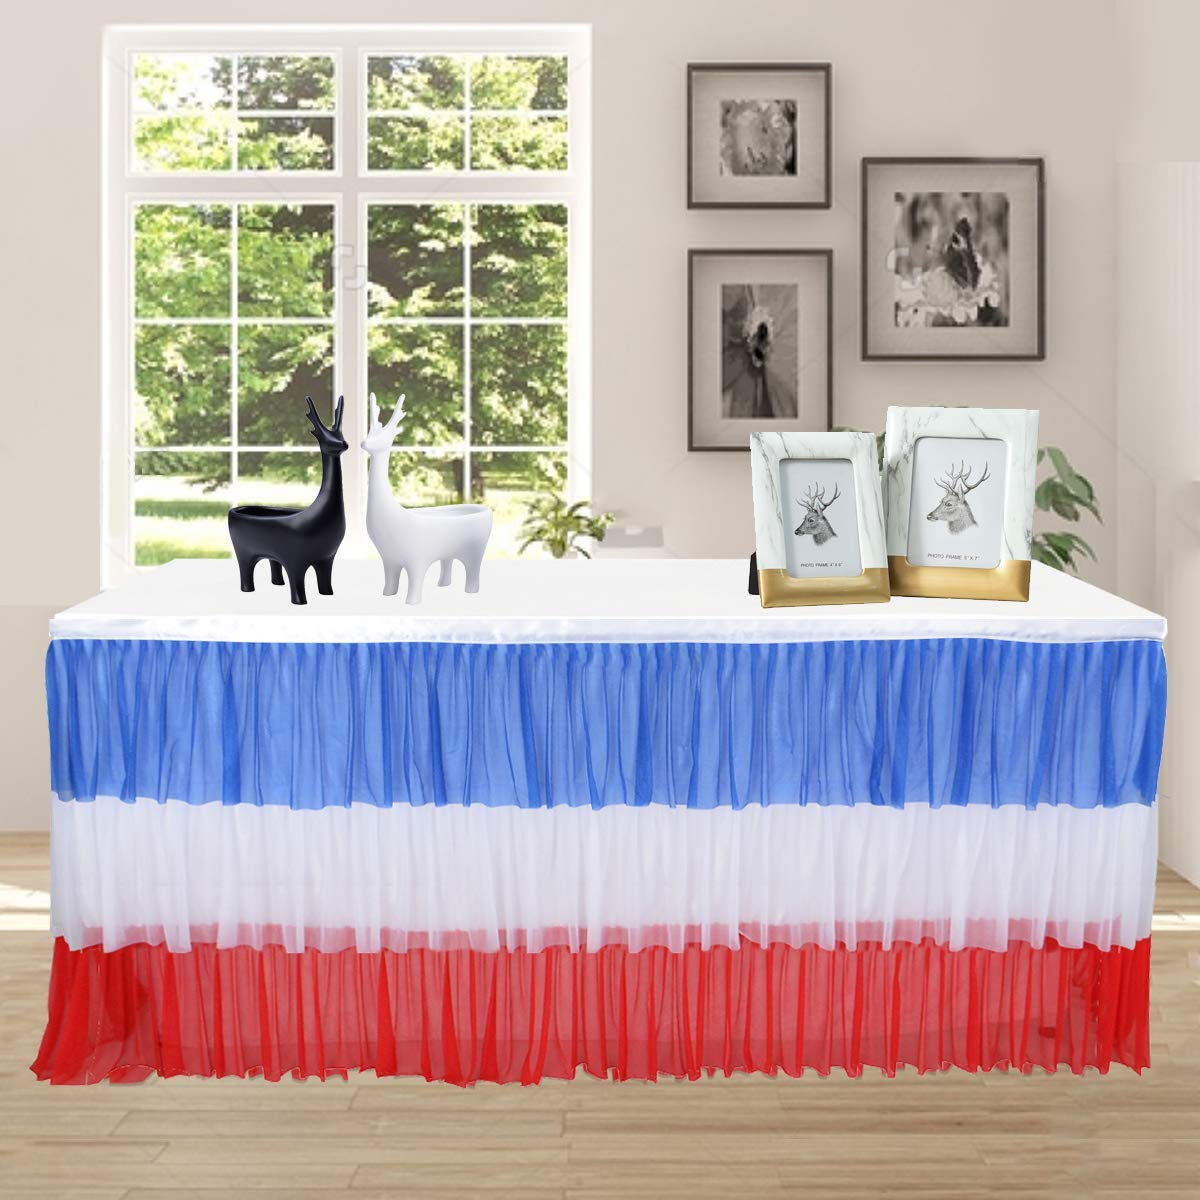 c4c83567c Get Quotations · Red Blue and White Color Patriotic Table Skirt 9FT Tulle Table  Skirt Tutu Table Skirting for